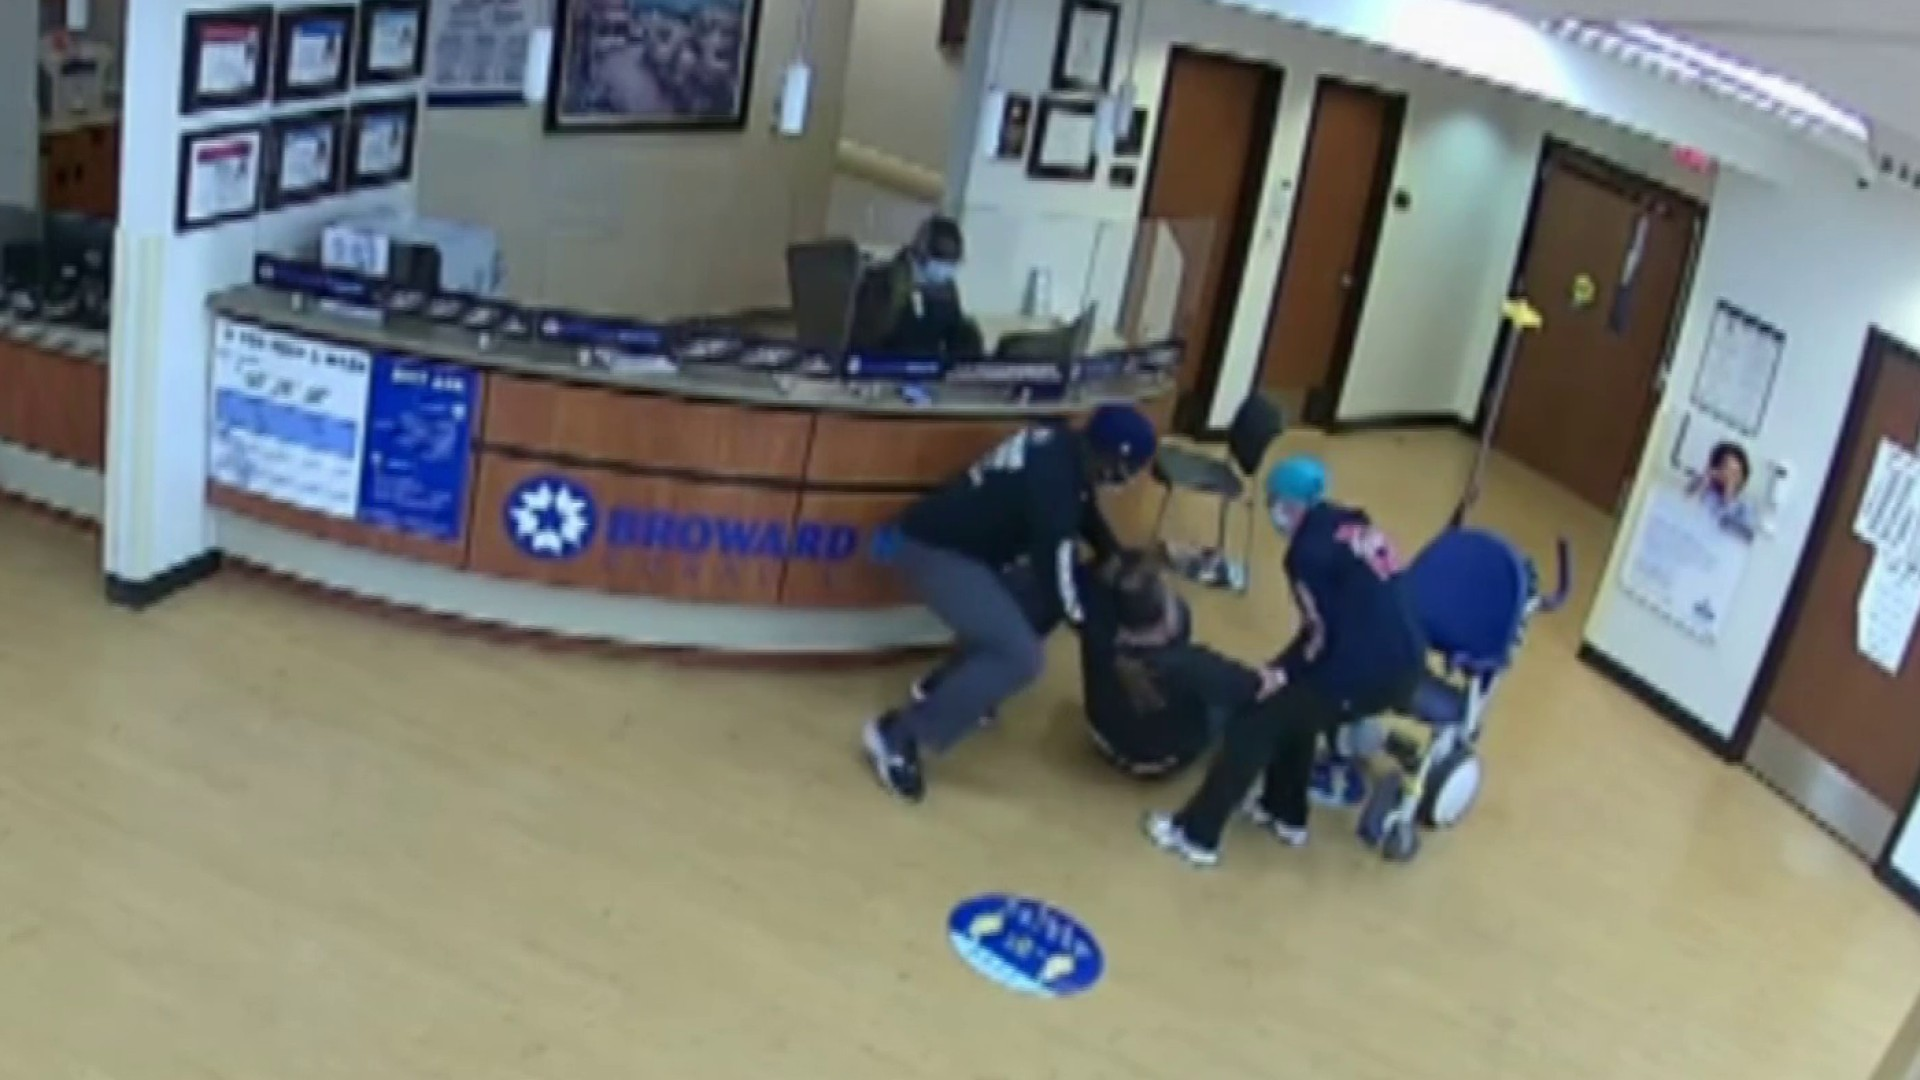 Footage Shows Man Having Heart Attack Inside Hospital, Staff Rushing to Help